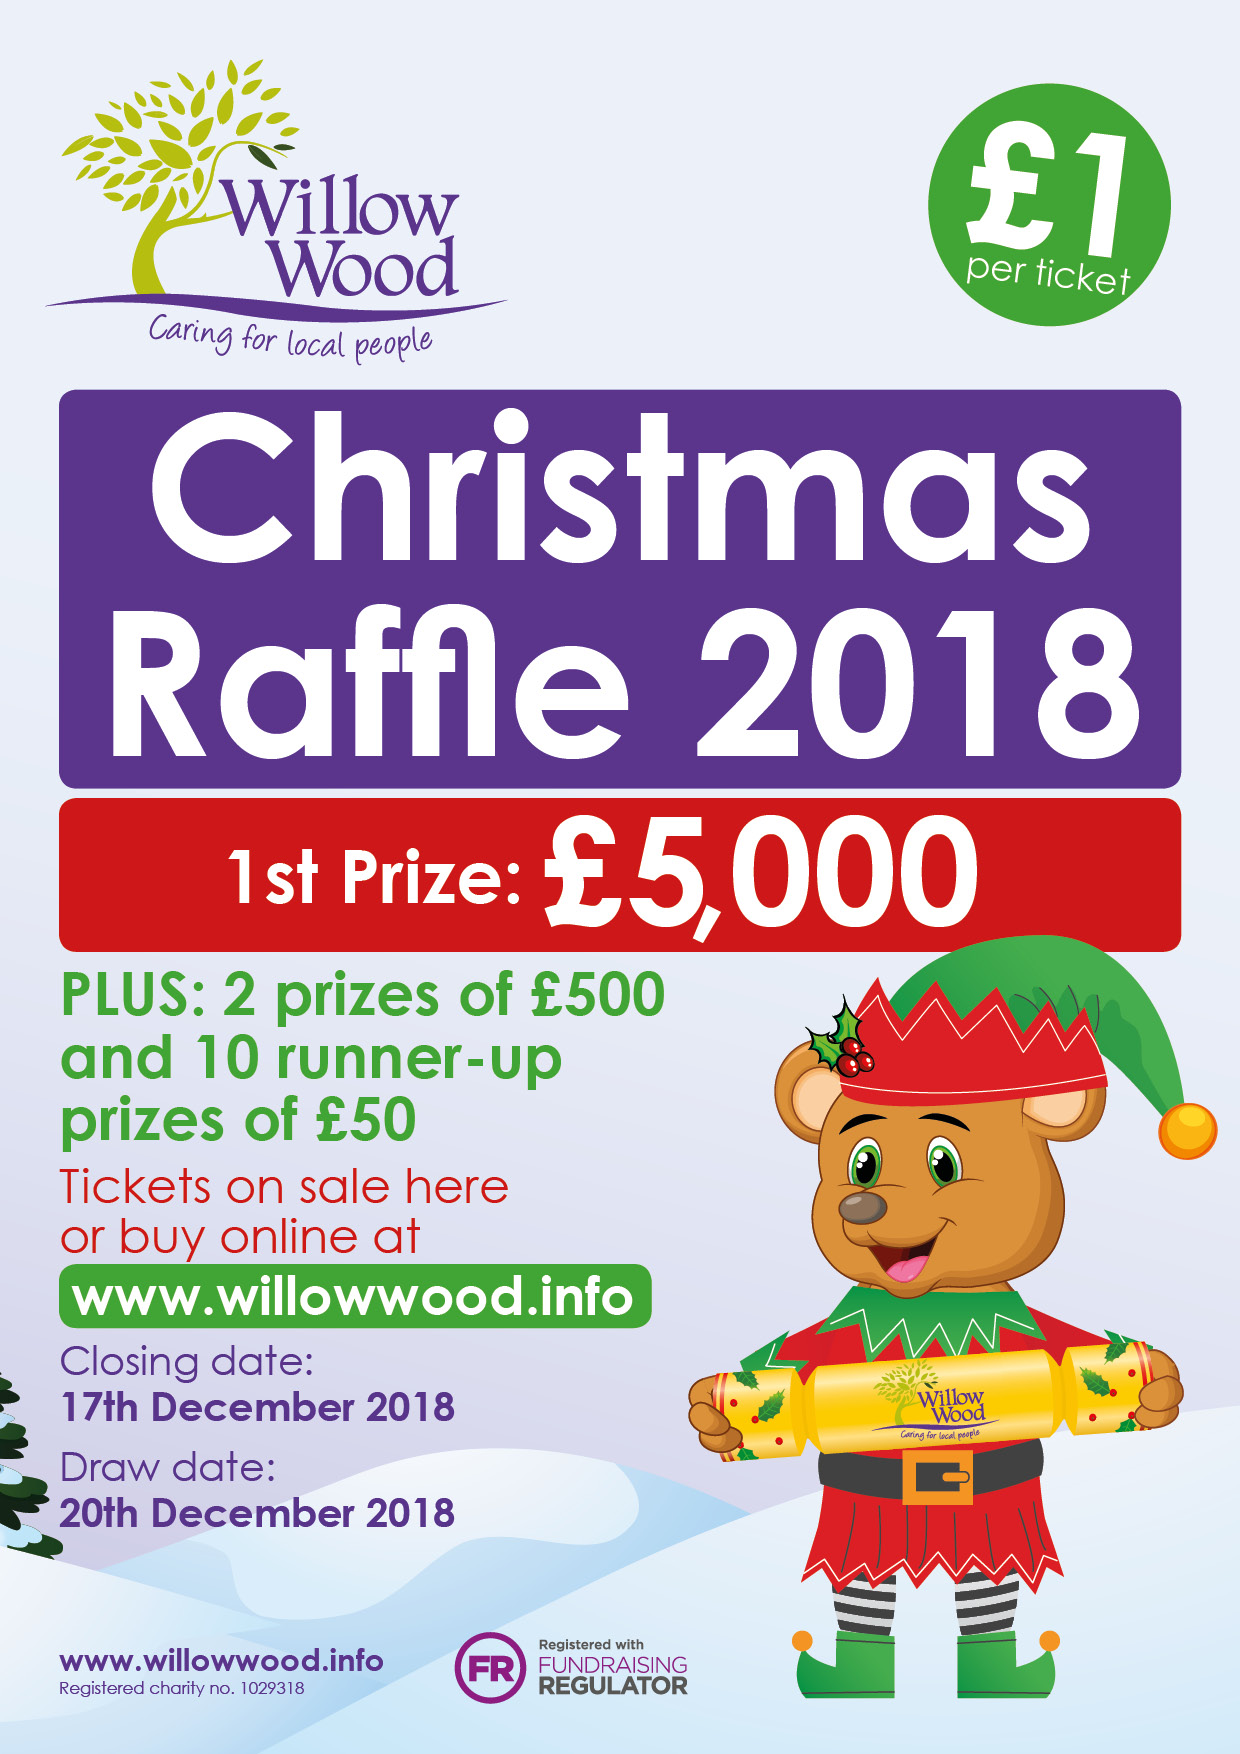 Willow Wood Hospice Christmas Raffle 2018